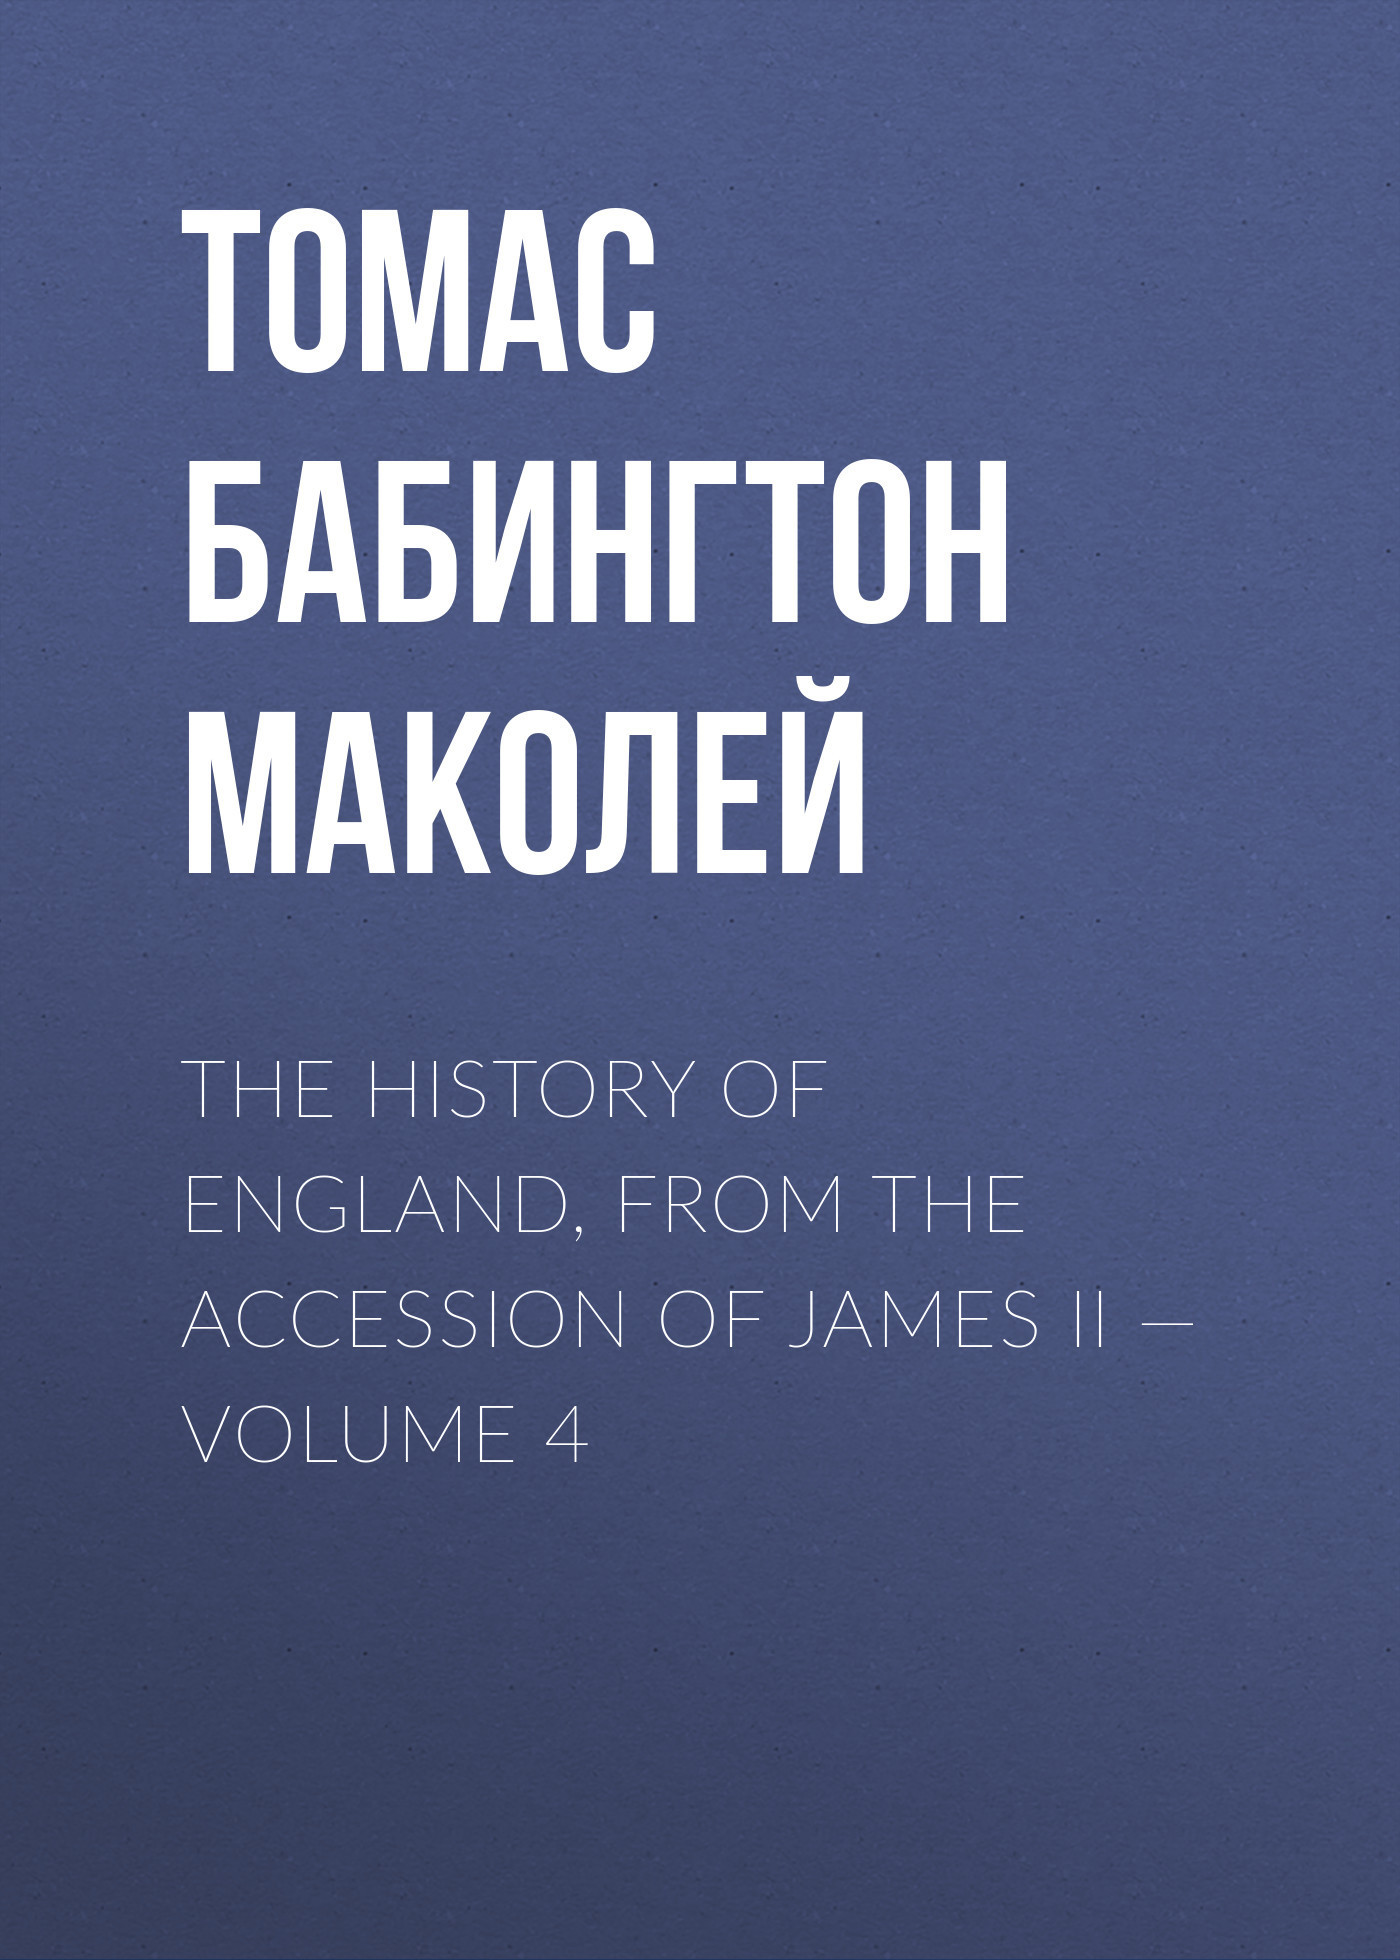 Томас Бабингтон Маколей The History of England, from the Accession of James II — Volume 4